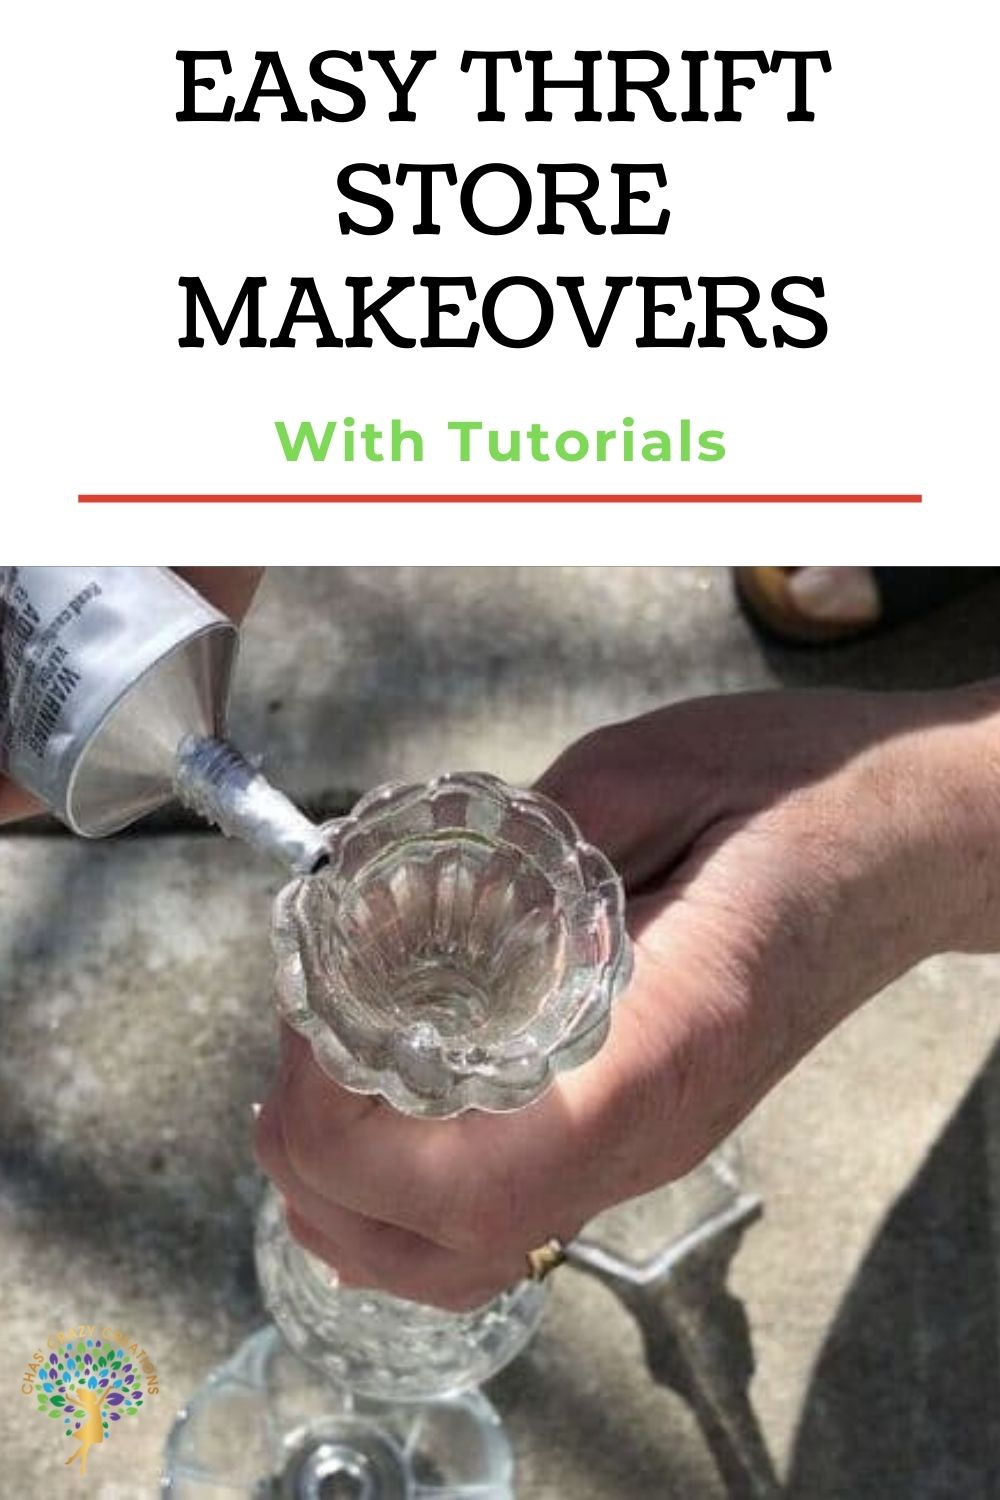 With just a little creativity you can take items from your home or a thrift store, give them a makeover, and turn them into something beautiful. Here are some easy thrift store makeovers.